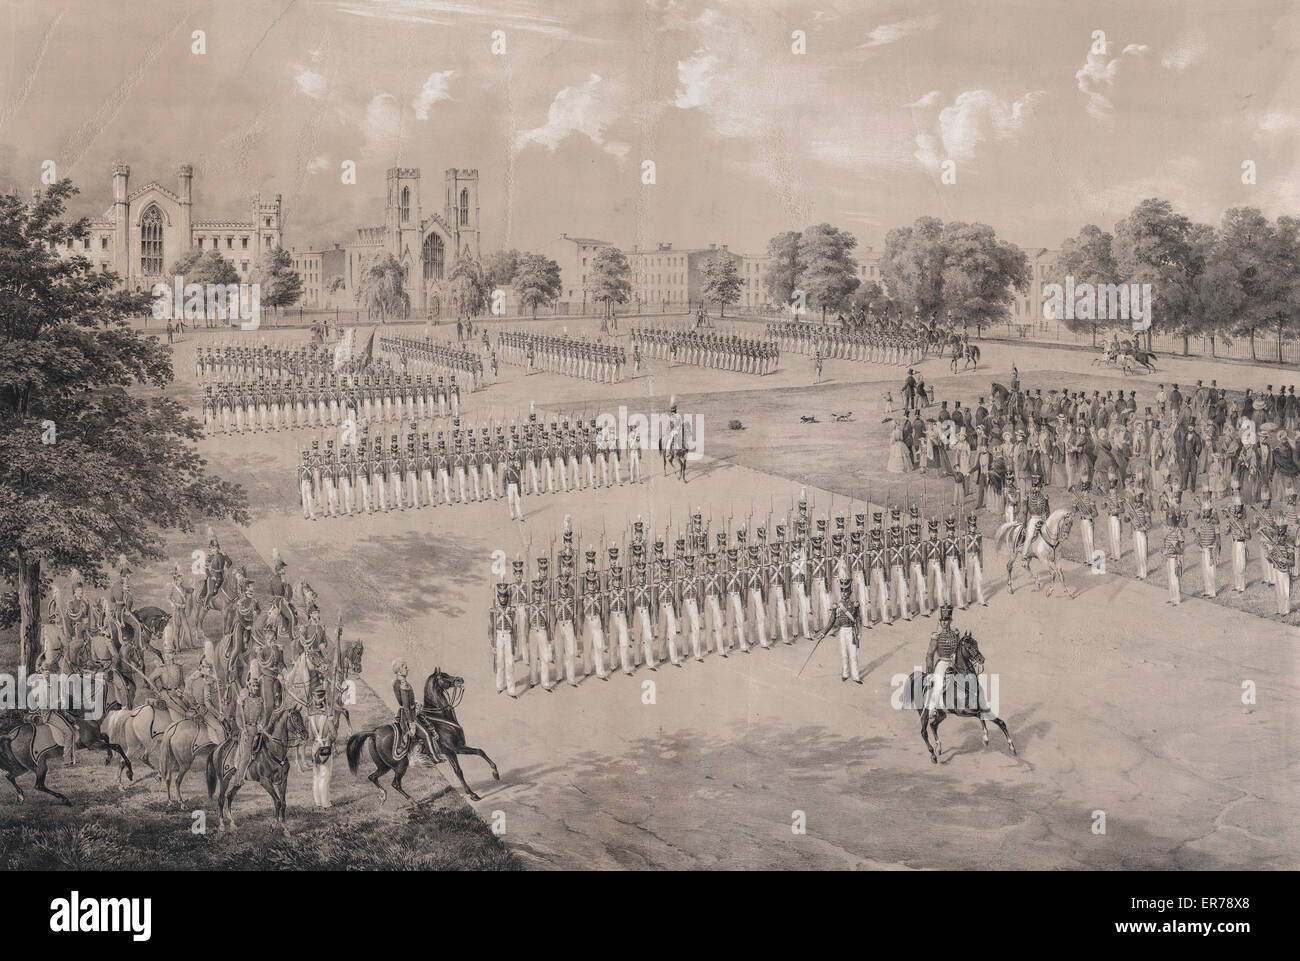 National Guard 7th Regiment N.Y.S.M. Print showing a mounted figure reviewing troops on a parade ground with gothic - Stock Image